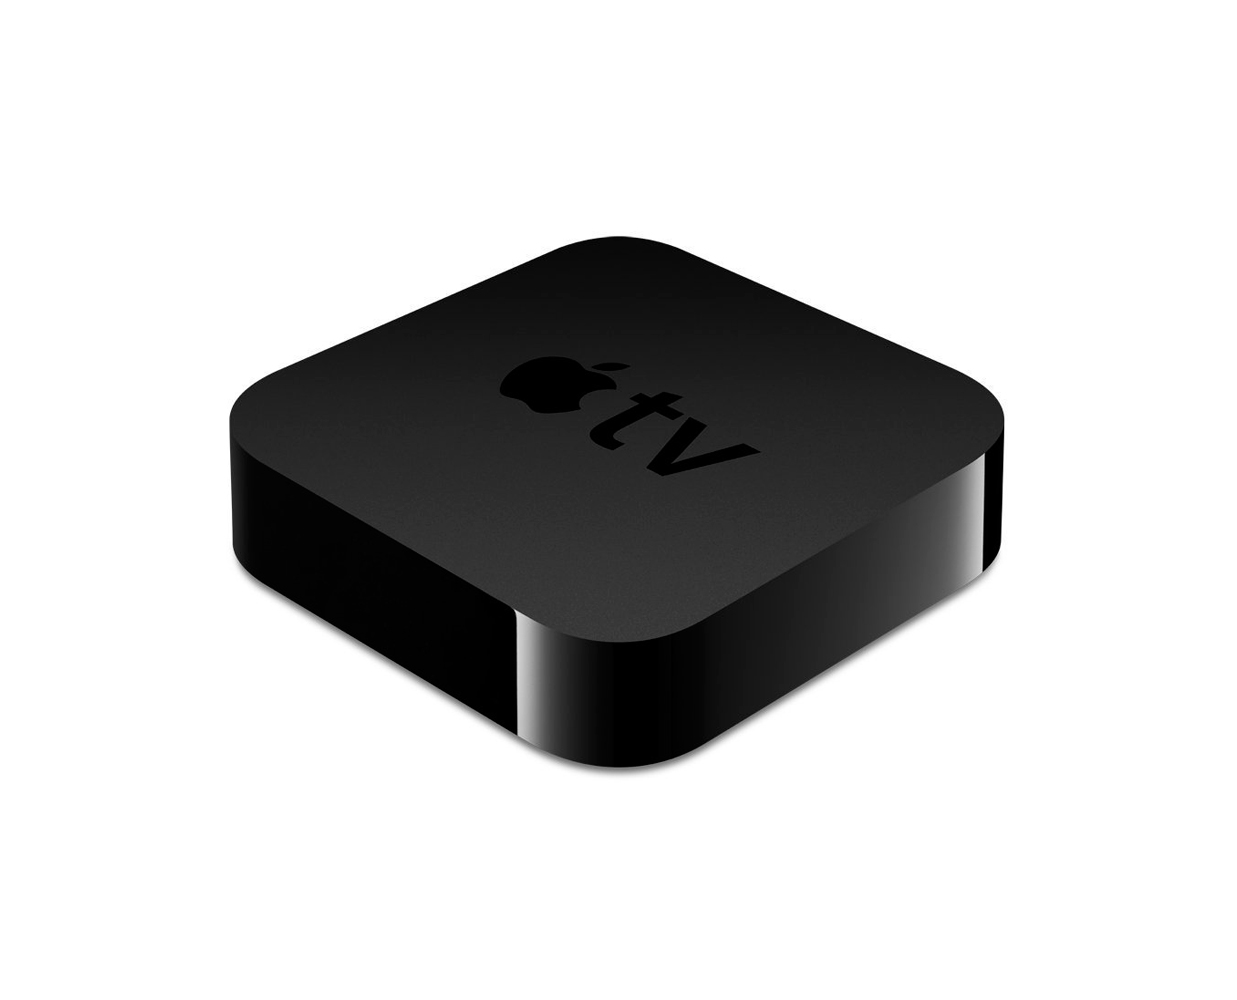 Mедиаплееры: Apple TV, фотография №1